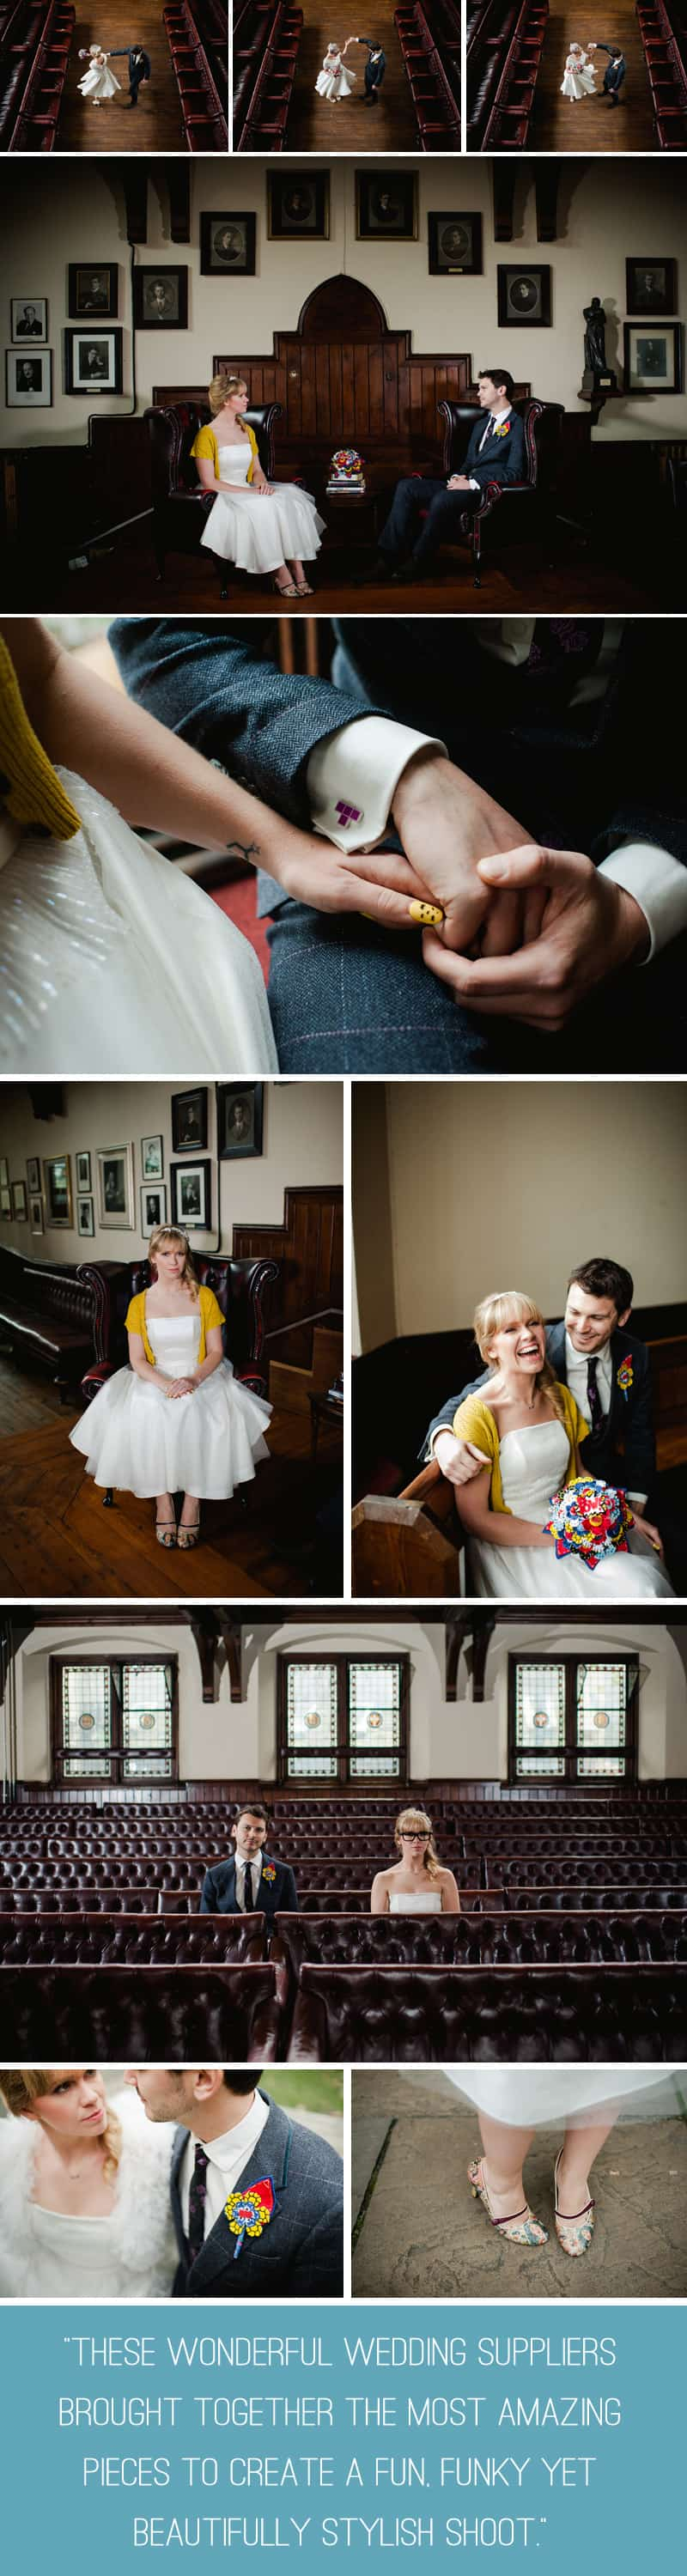 Geek Chic Styled Shoot 1803